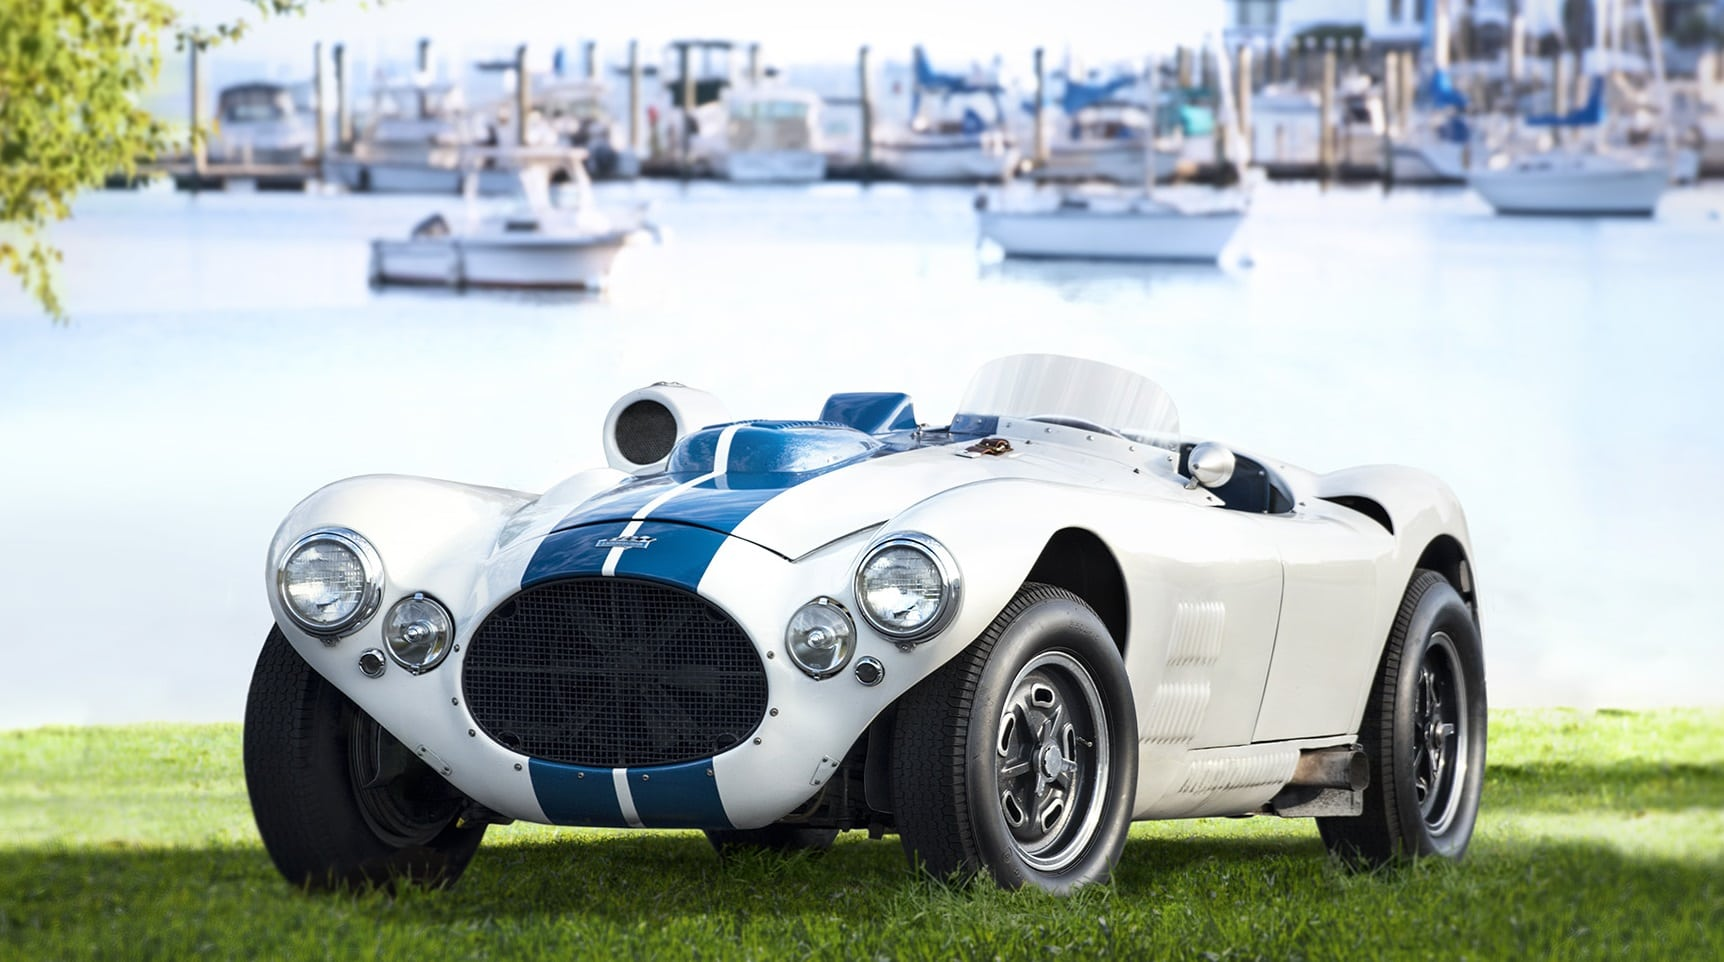 Concours D Elegance >> Ct Greenwich Concours D Elegance Newenglandautoshows Com